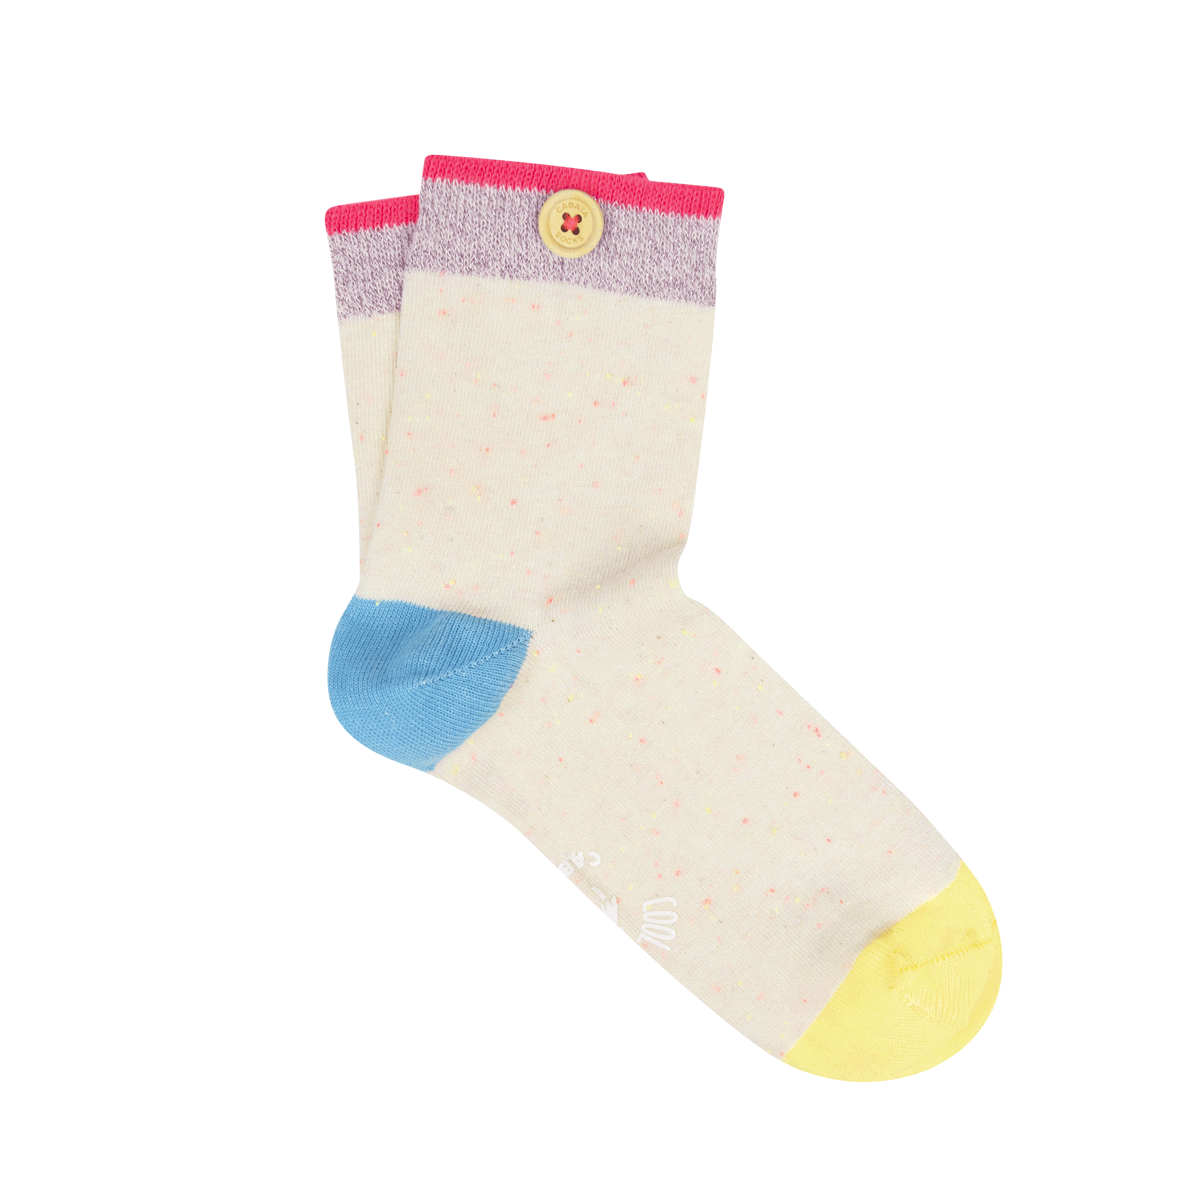 unloosable-socks-button-women-36-41-socks20-dian-cre